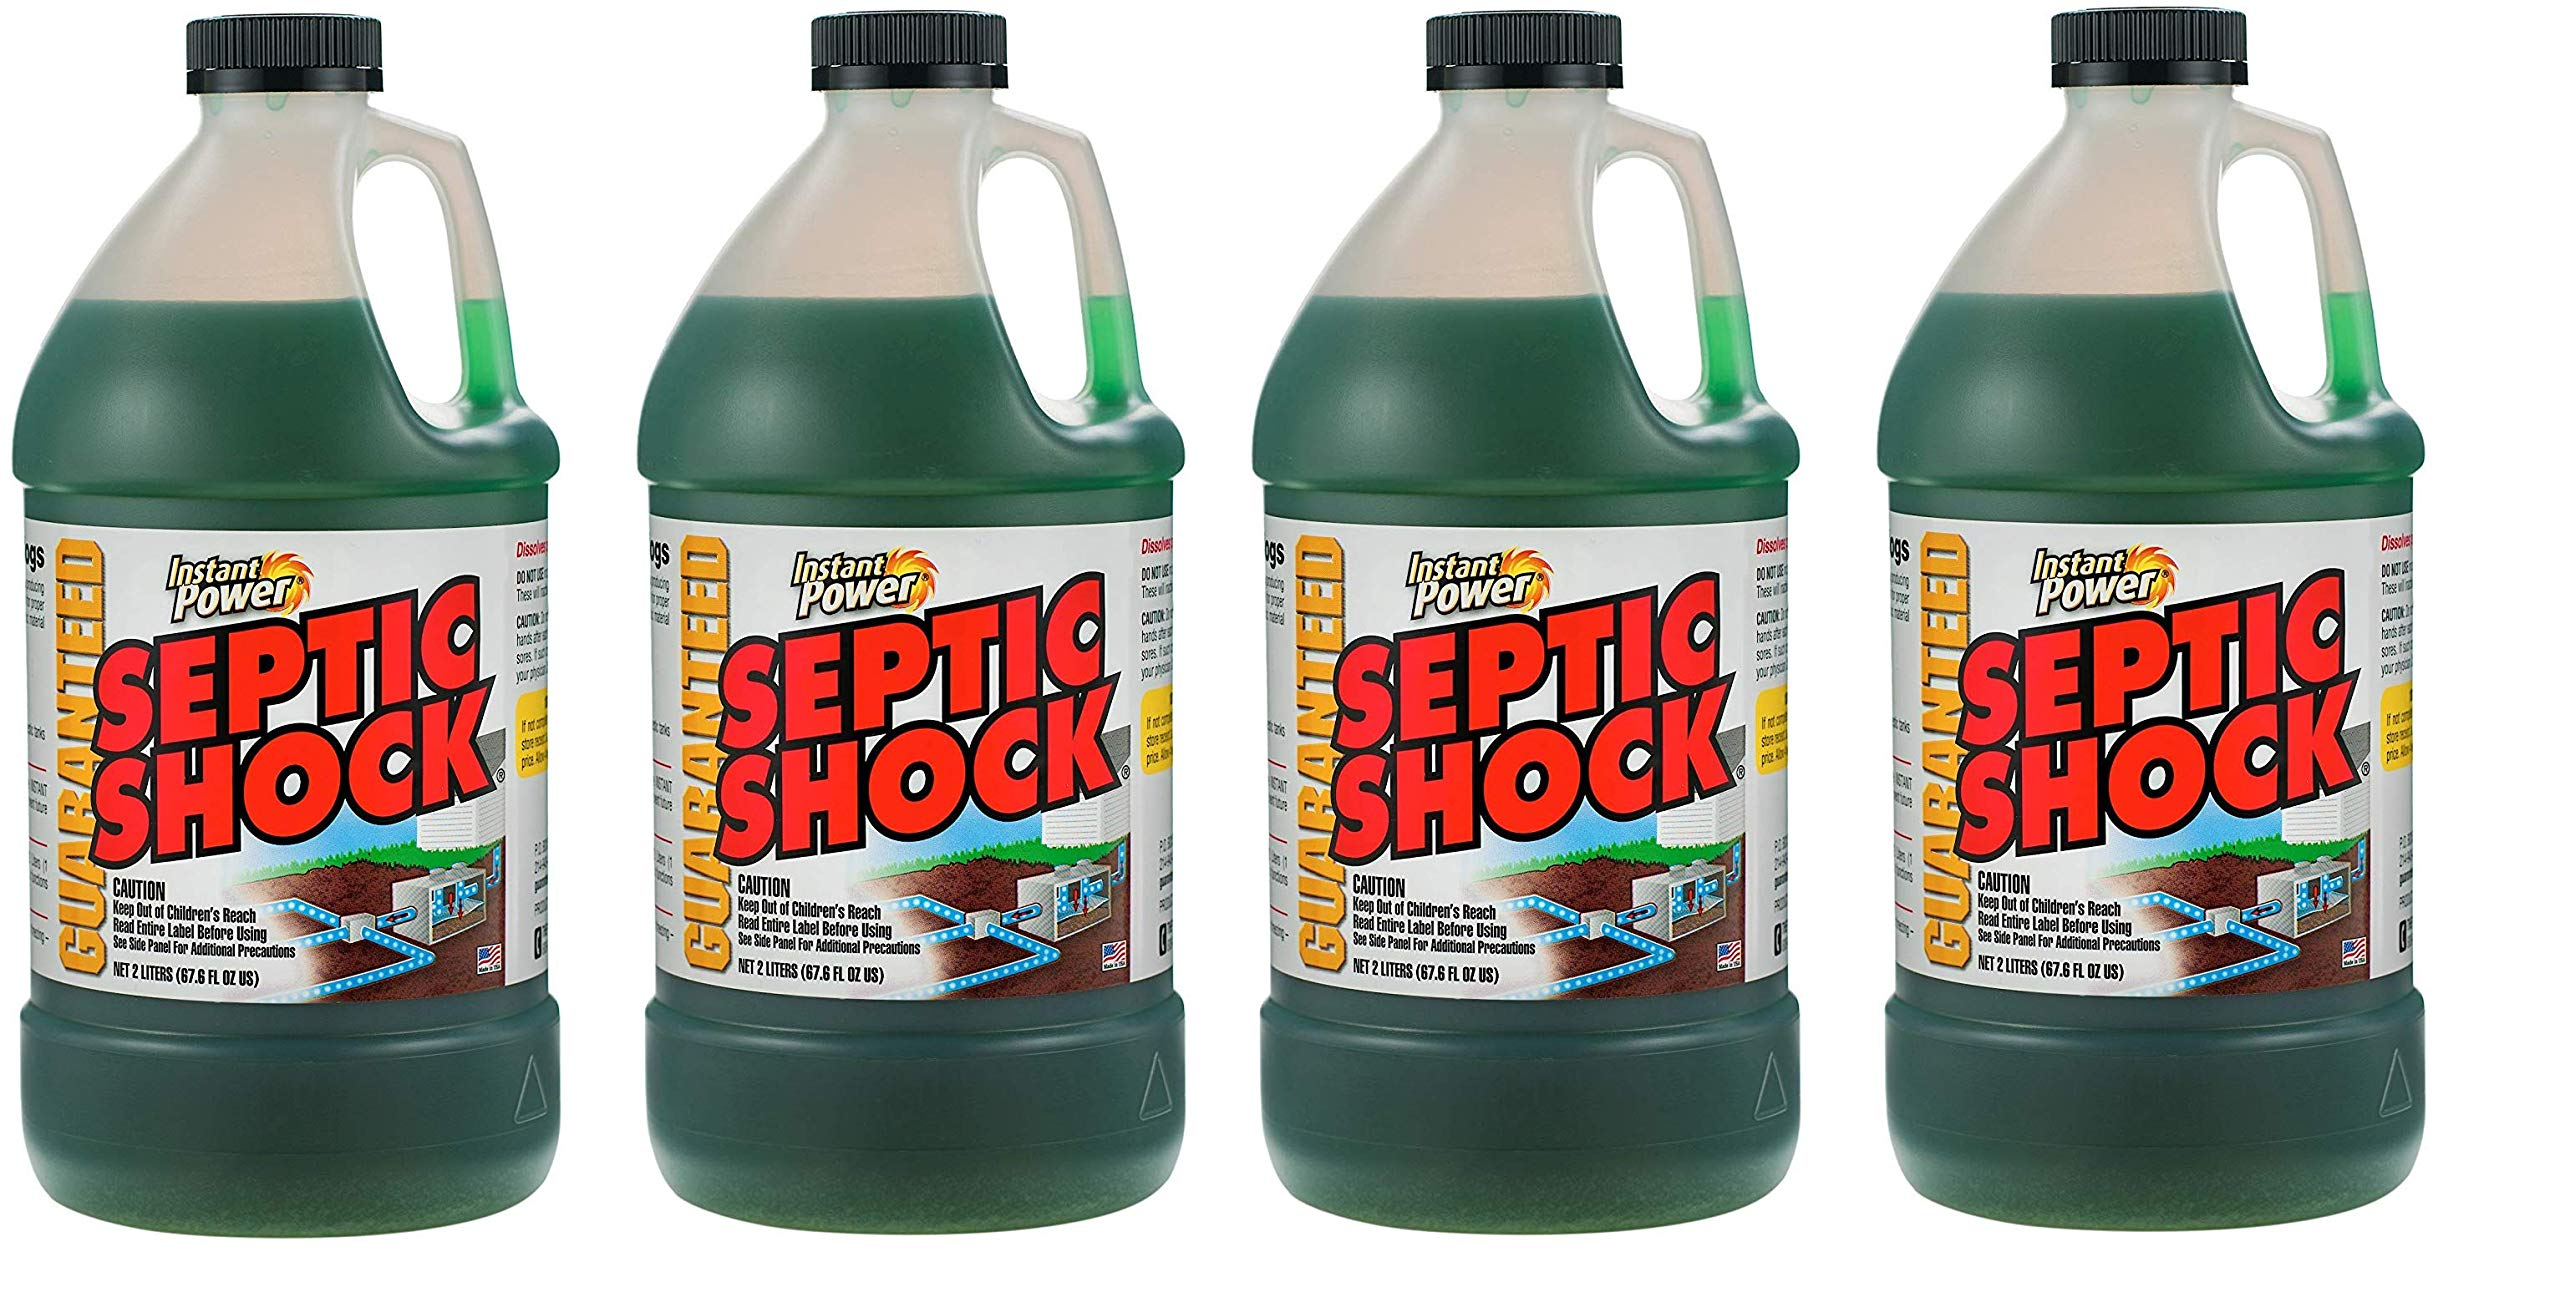 Instant Power 1868 Septic Shock Blue 67 Fl Oz (1, Fоur Paсk)